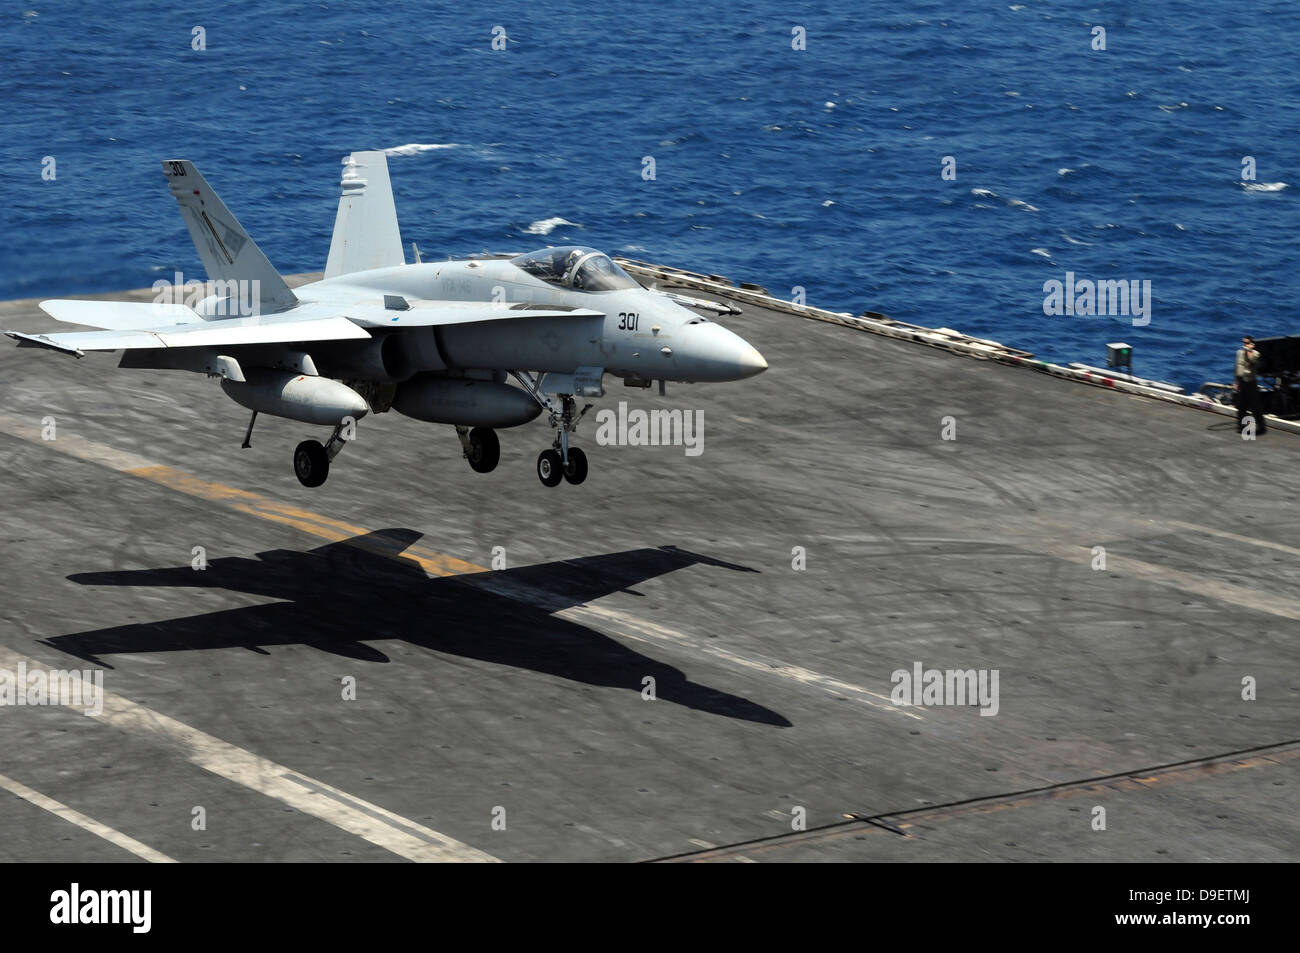 South China Sea, August 10, 2011 - An F/A-18C Hornet lands aboard the aircraft carrier USS Ronald Reagan. - Stock Image